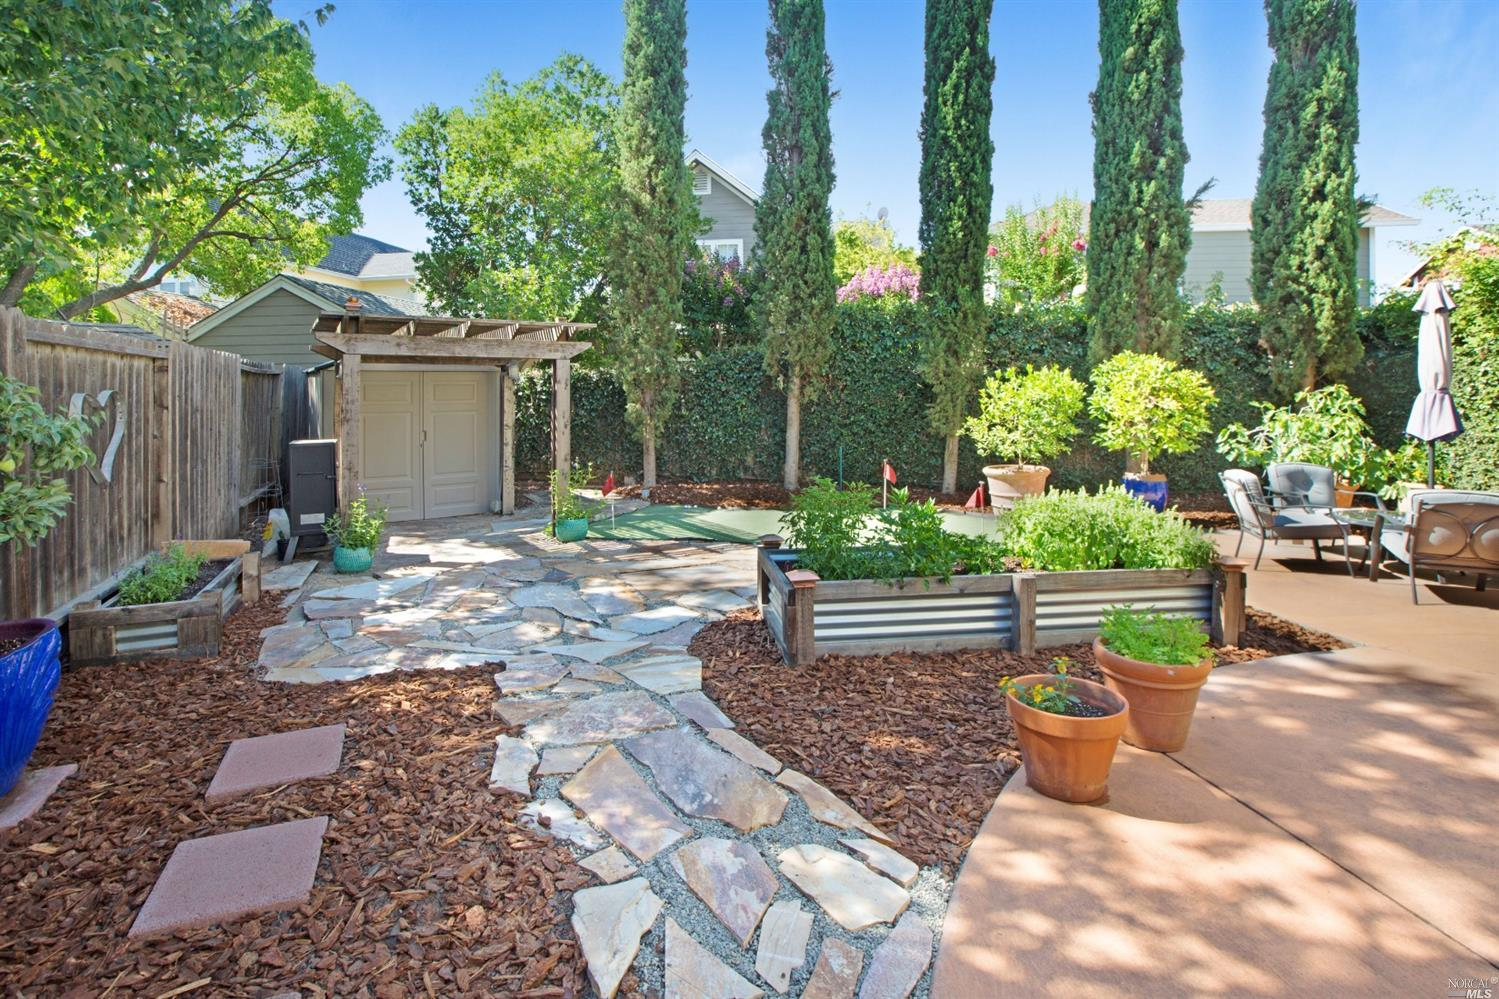 Ideally located so close to the Sonoma Plaza!  This beautiful, turn-key home is just perfect for  full time living or vacationing. Pretty mountain views from the upper balcony. Relax or entertain in the tastefully landscaped rear garden - complete with a putting green, fruit trees, patio & raised herb beds. Contemporary, loads of light, high ceilings, skylight, and two master suites with jetted tub in the master bathroom. This home is crisp and clean with tile and wood laminate floors, and updates throughout. The living room includes a fireplace and glass door opening to the rear garden, and the dining area opens to a wonderful, light filled atrium which could be used as an office, art studio, more.  Lovely kitchen with granite countertops and stainless appliances. Laundry room, reserved parking. Great opportunity to enjoy a convenient and comfortable downtown Sonoma lifestyle.